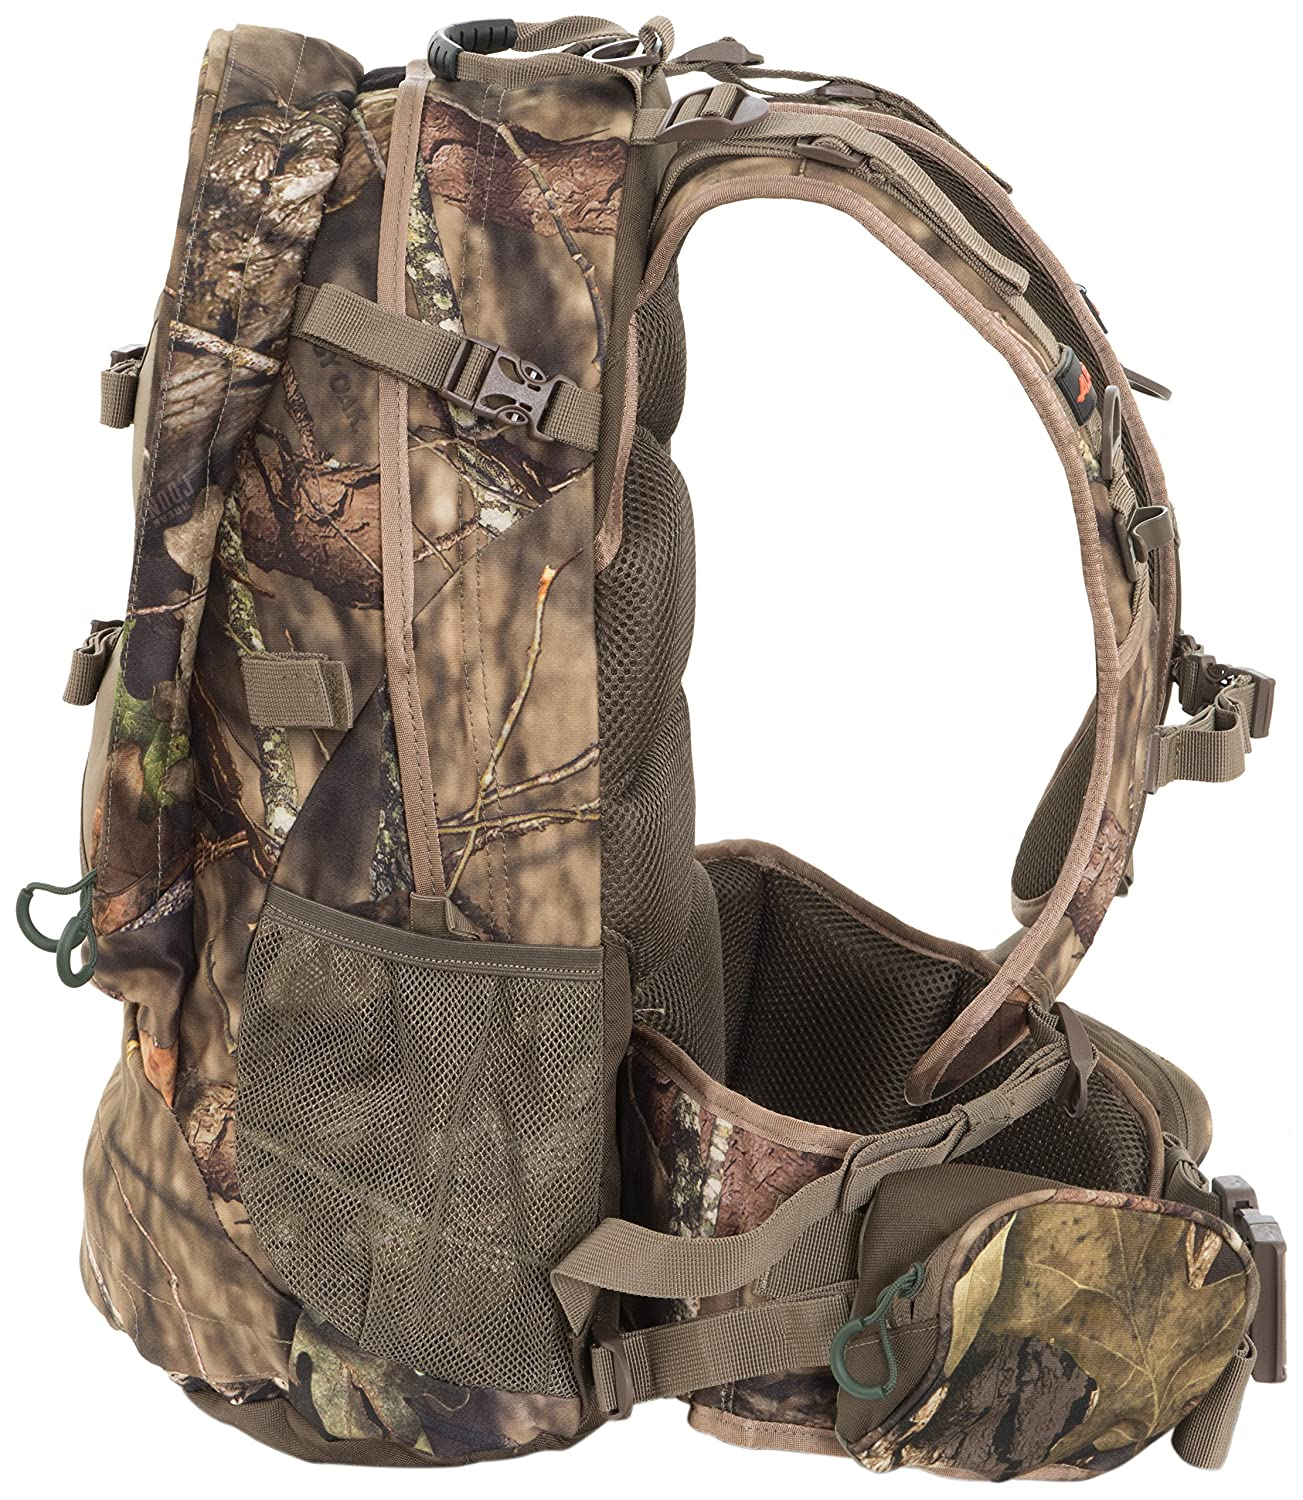 Amazon.com : ALPS OutdoorZ Pursuit Hunting Pack : Outdoor Backpacks ...